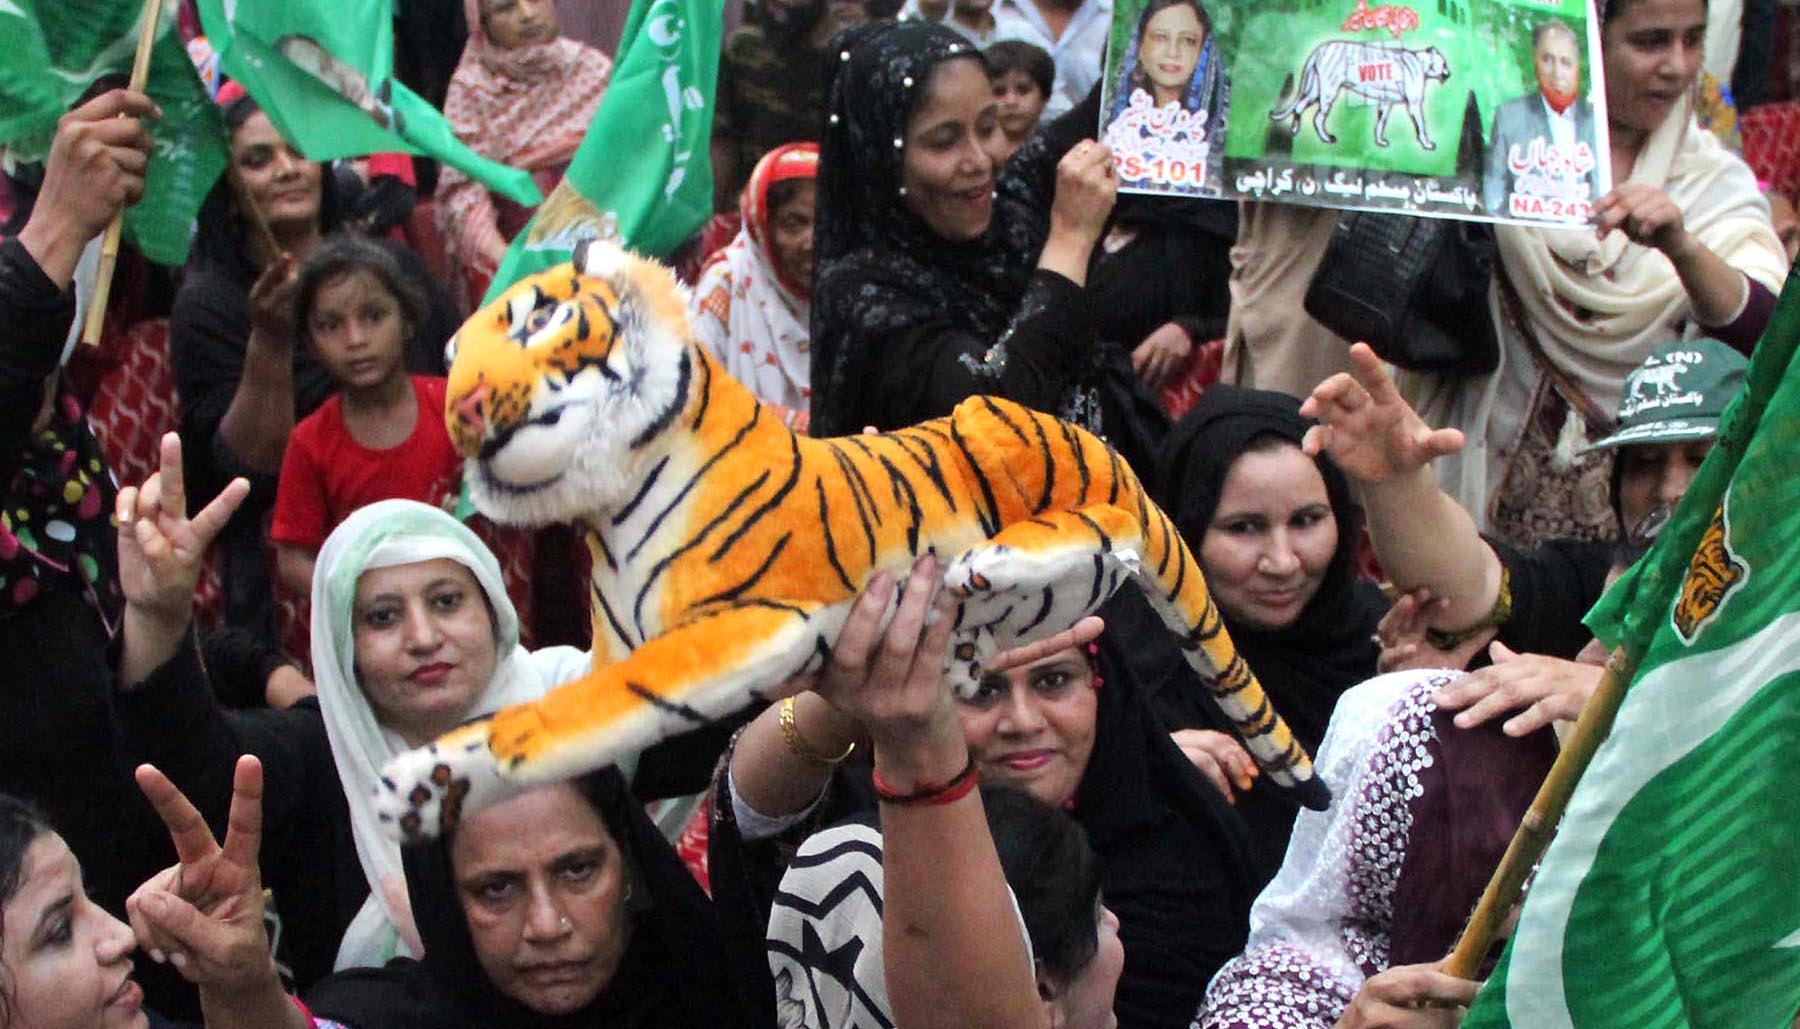 Pakistan Muslim League-Nawaz workers hold party's election symbol 'tiger' during party's president Shehbaz Sharif's public meeting at Khadda Market Lyari. Photo: Online